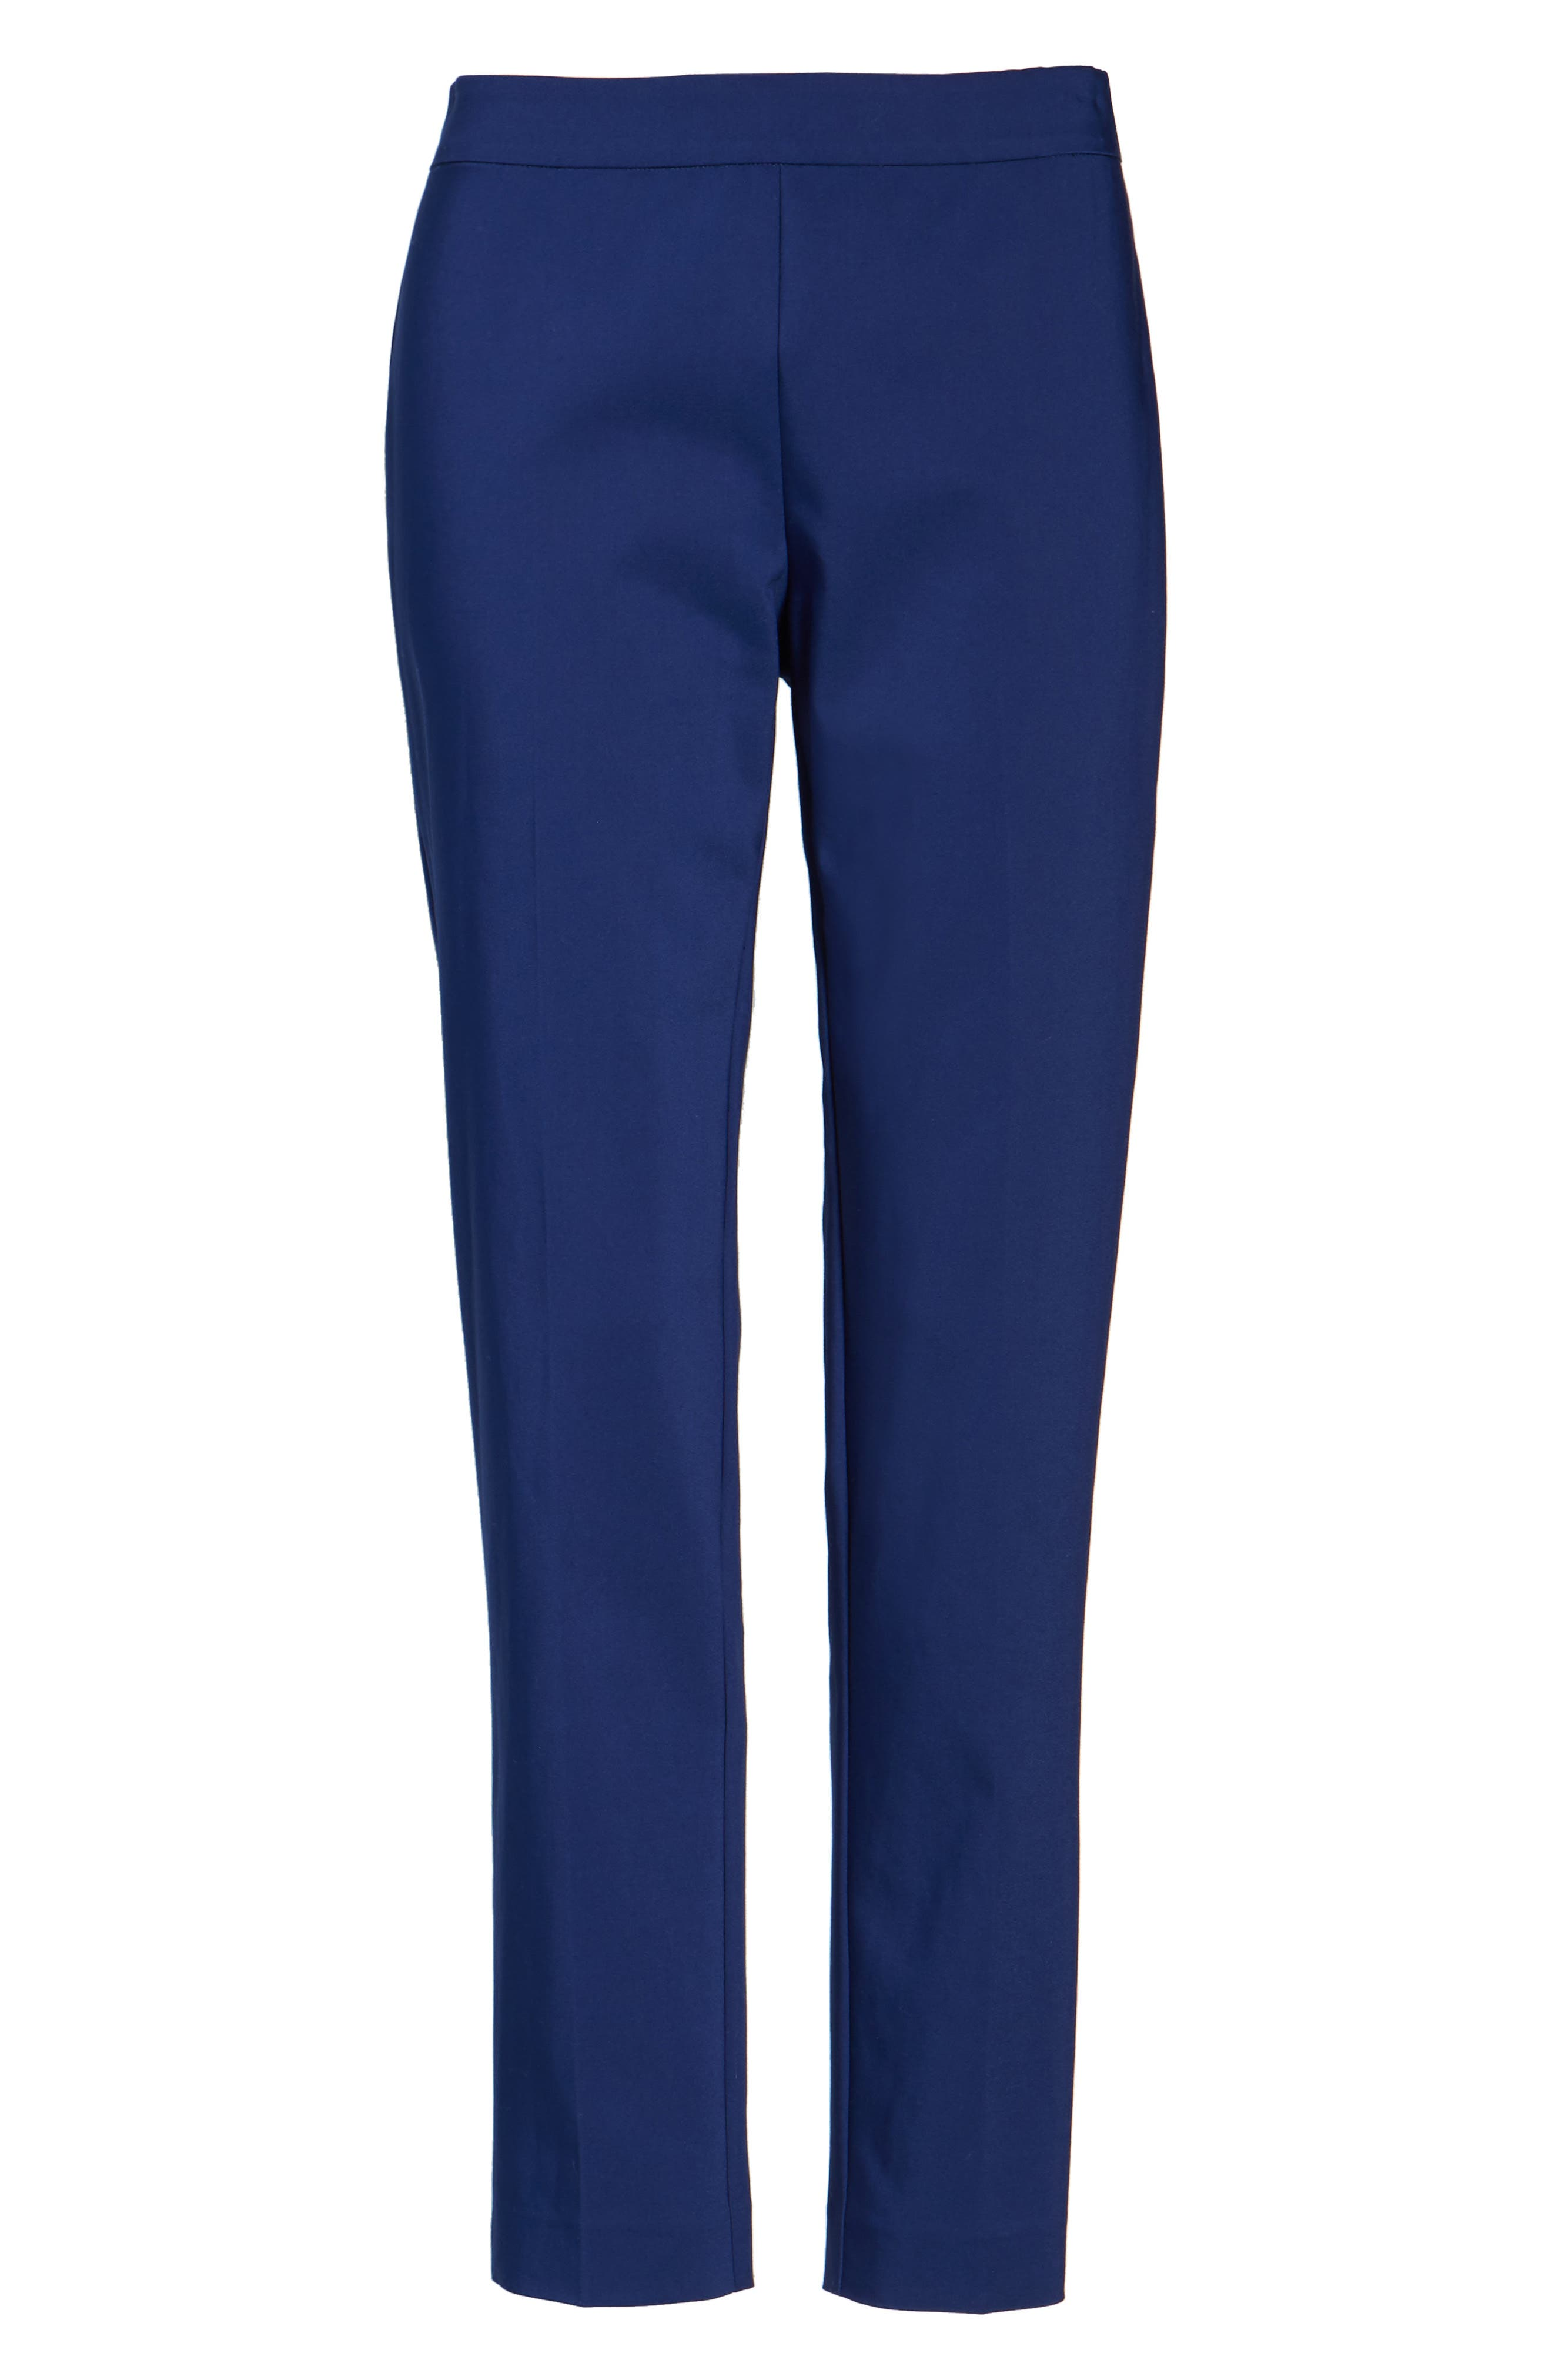 Jackie Pull-On Ankle Pants,                             Alternate thumbnail 6, color,                             485